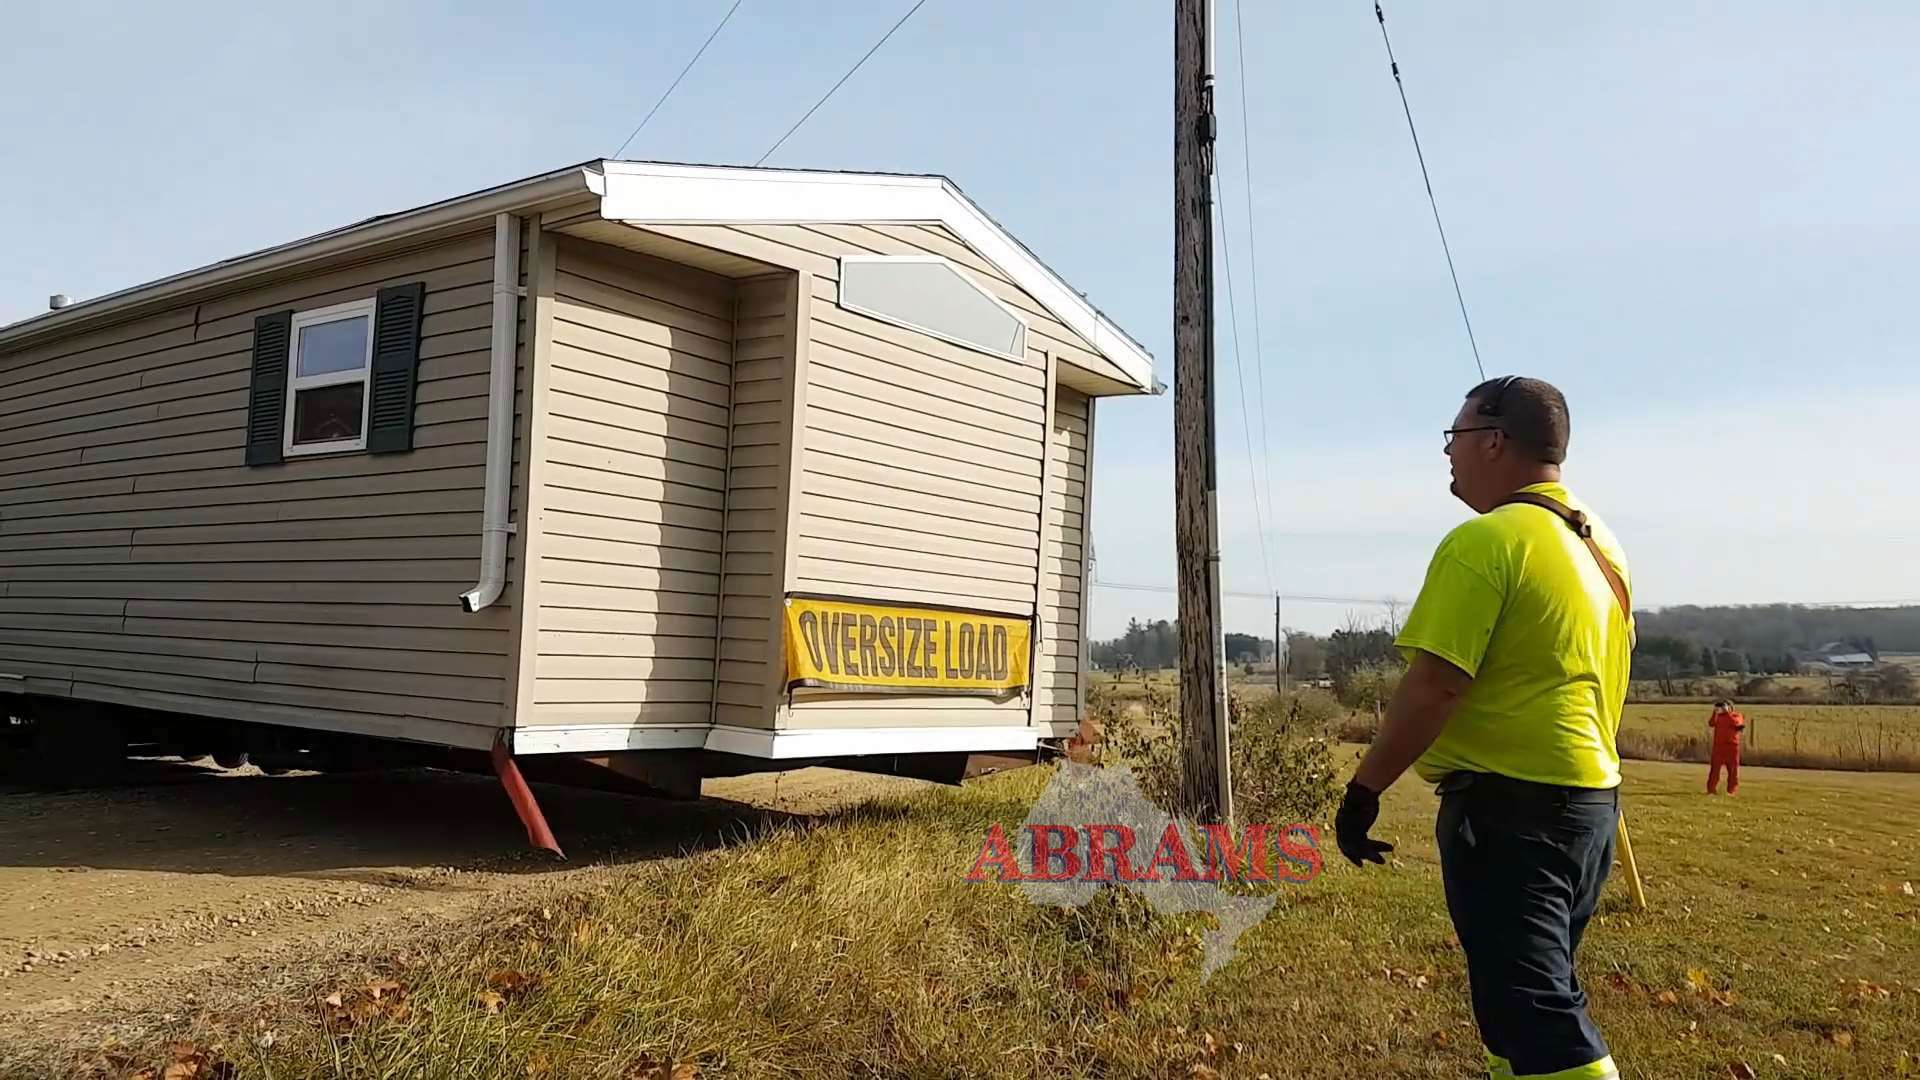 Trailer gets very close to the hydro pole